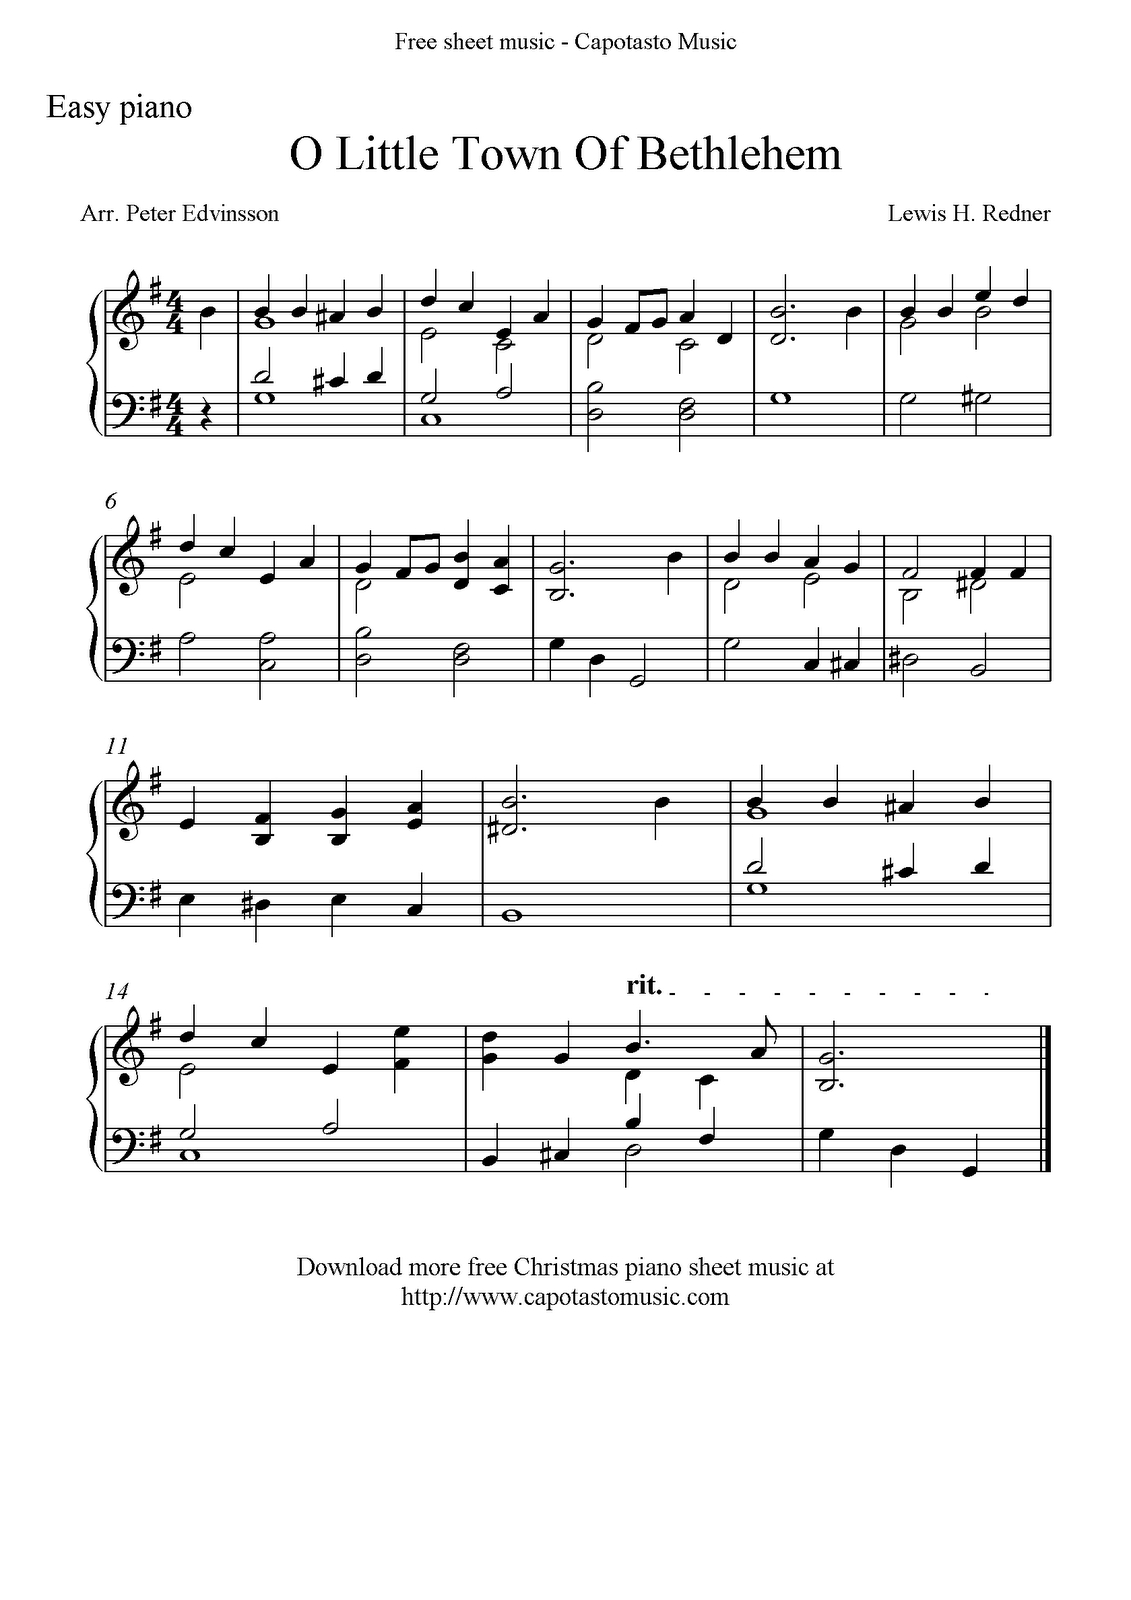 Easy Piano Solo Arrangementpeter Edvinsson Of The Christmas - Free Christmas Sheet Music For Keyboard Printable